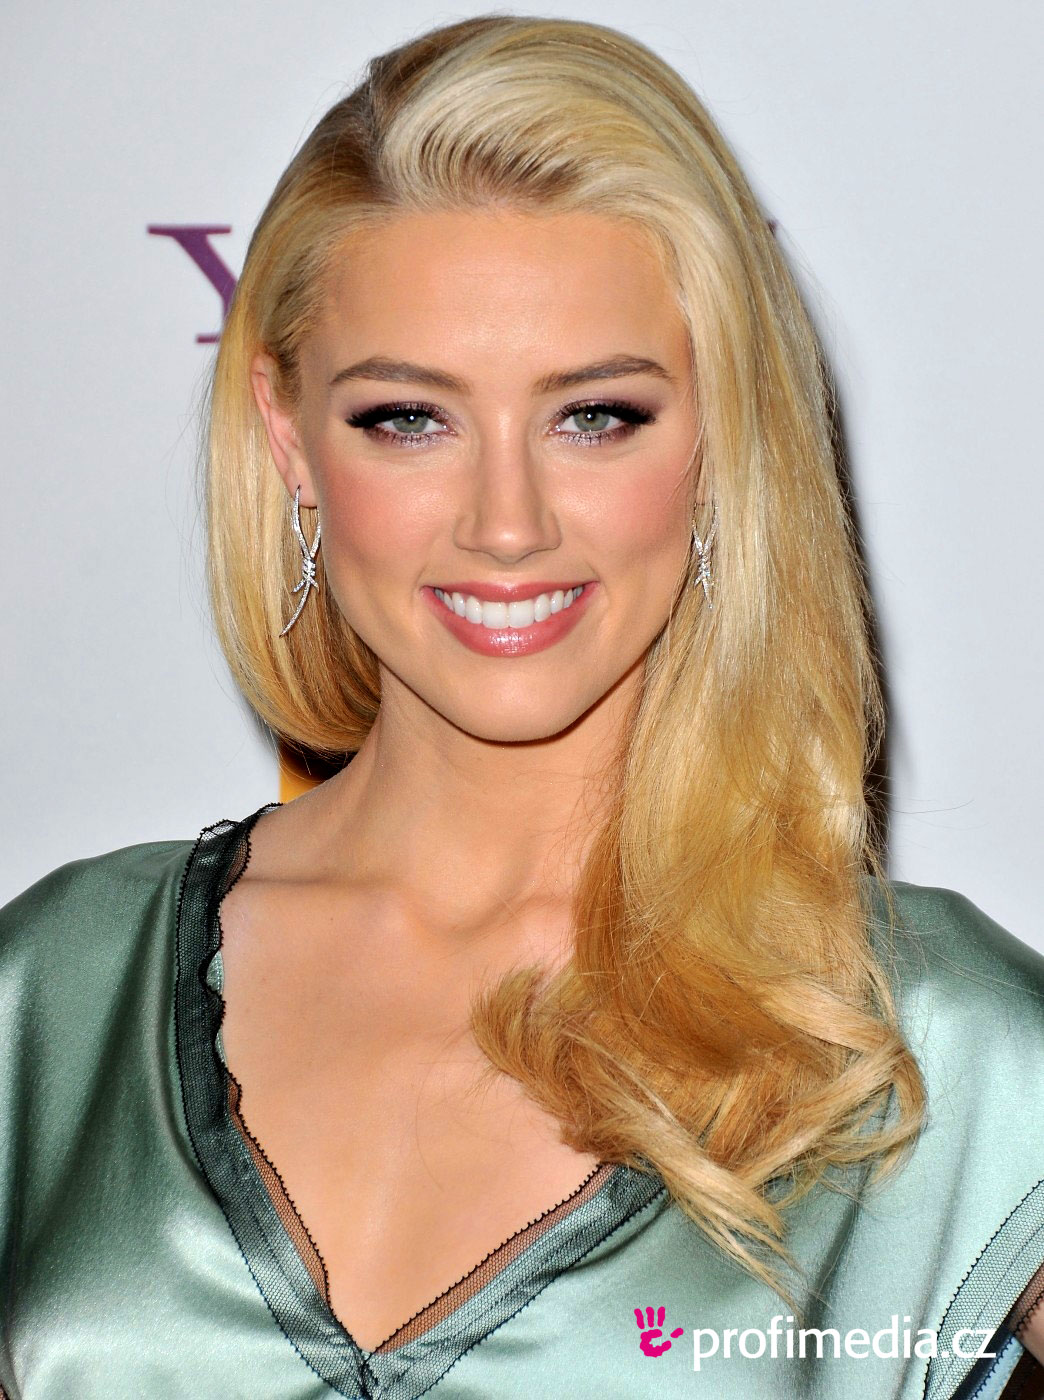 Amber Heard 3 Beautiful Amber Amber Heard